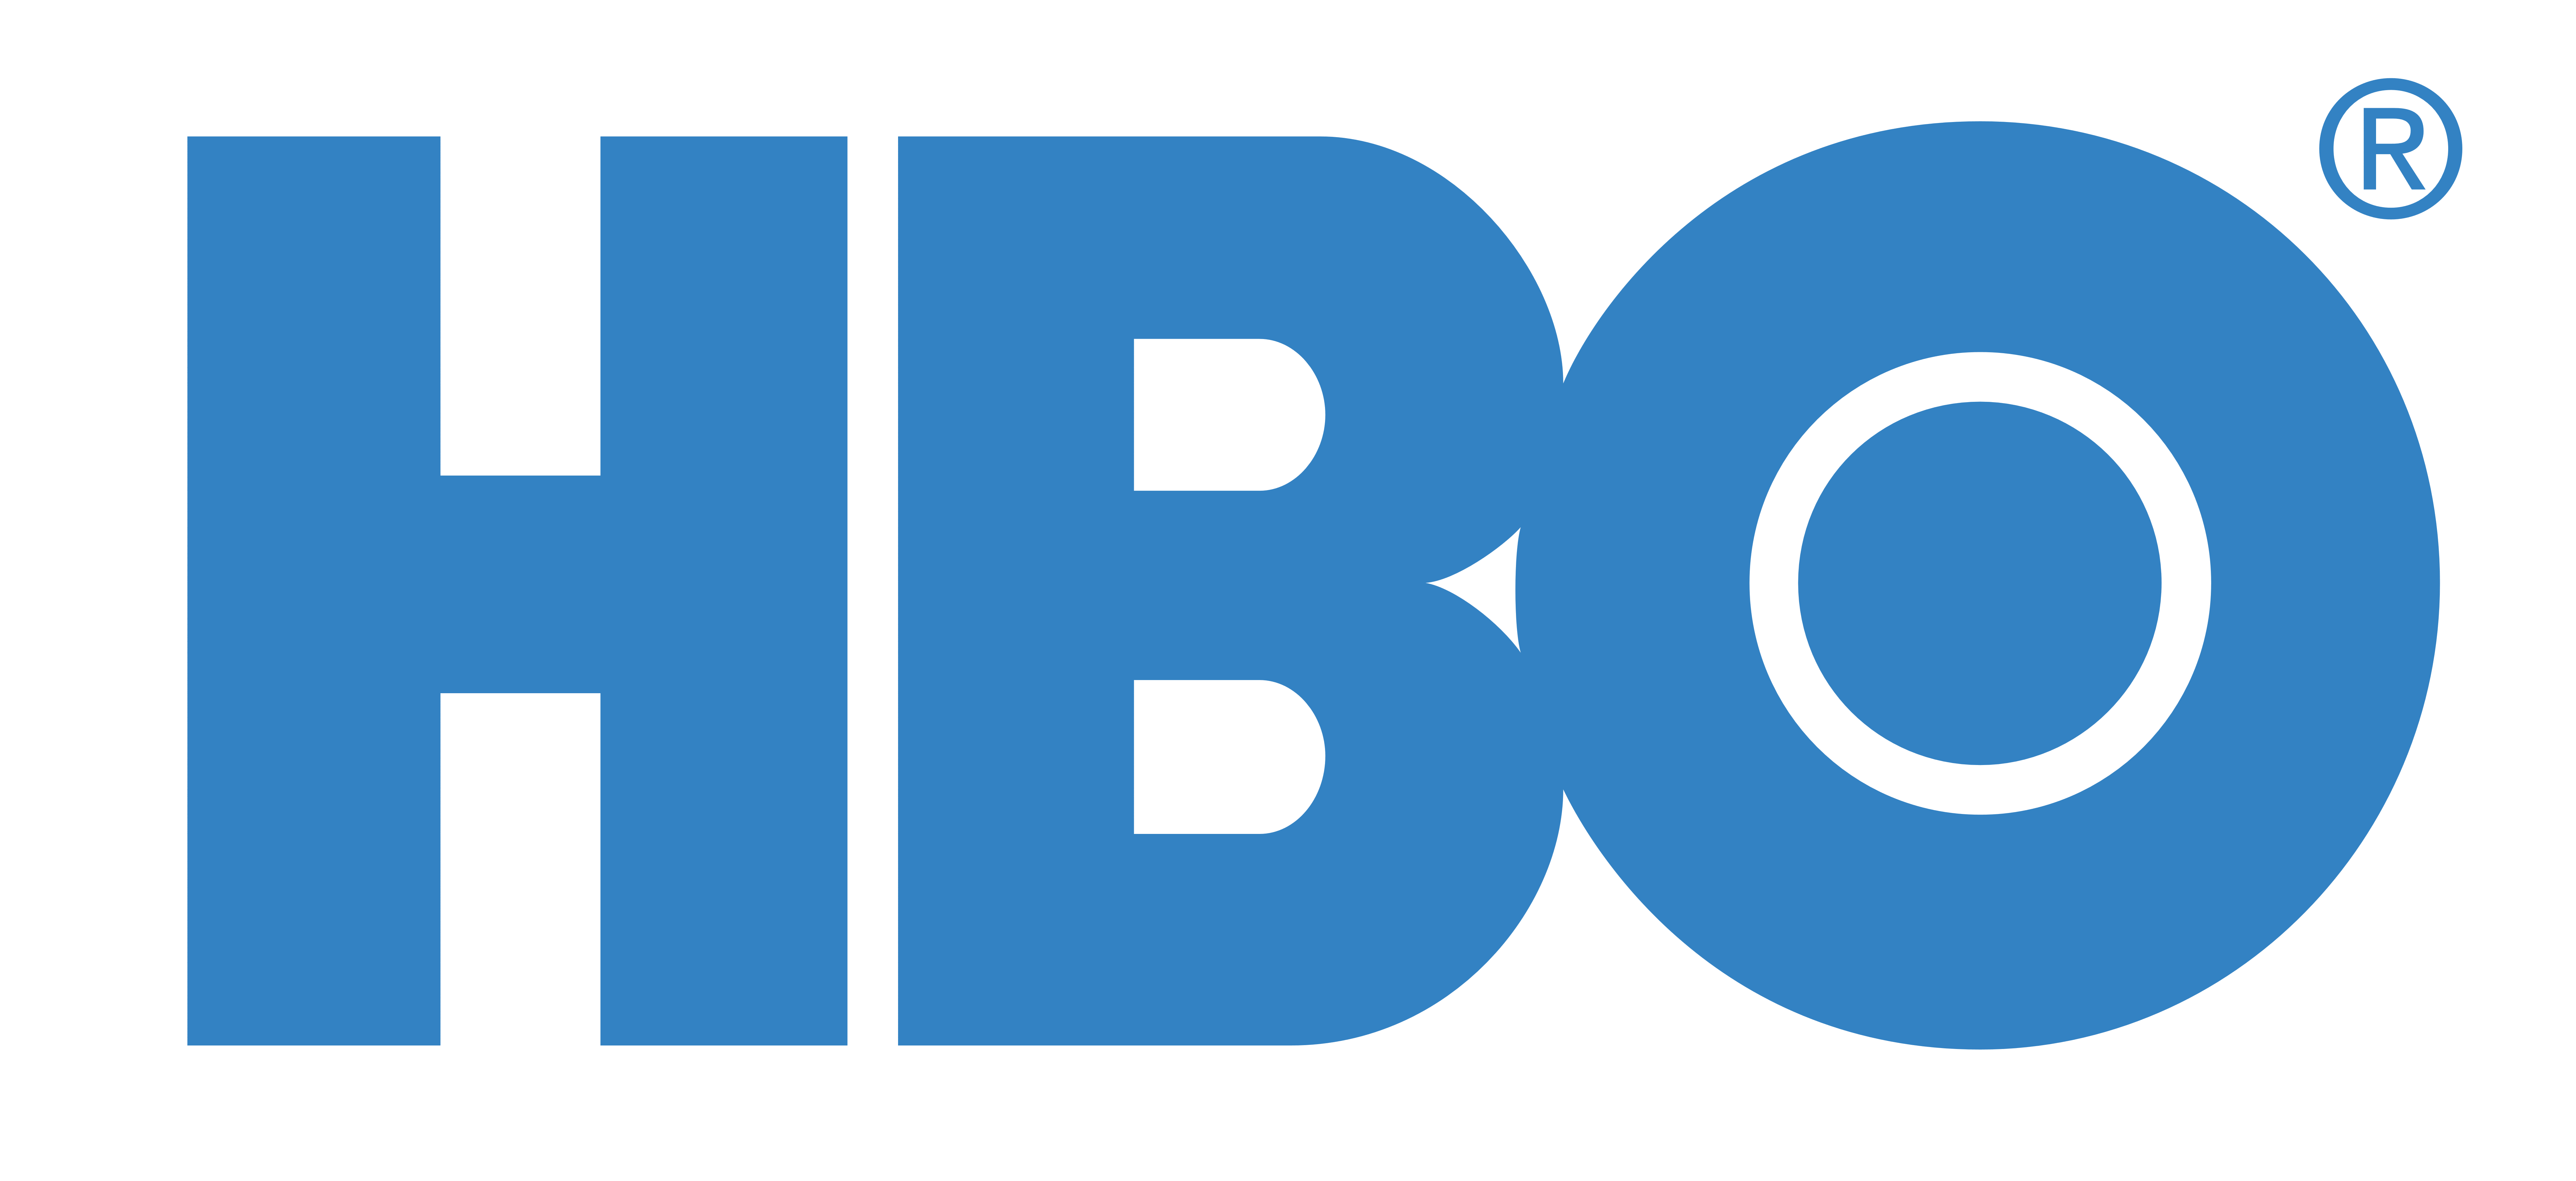 Logos download logo blue. Transparent hbo slogan image freeuse